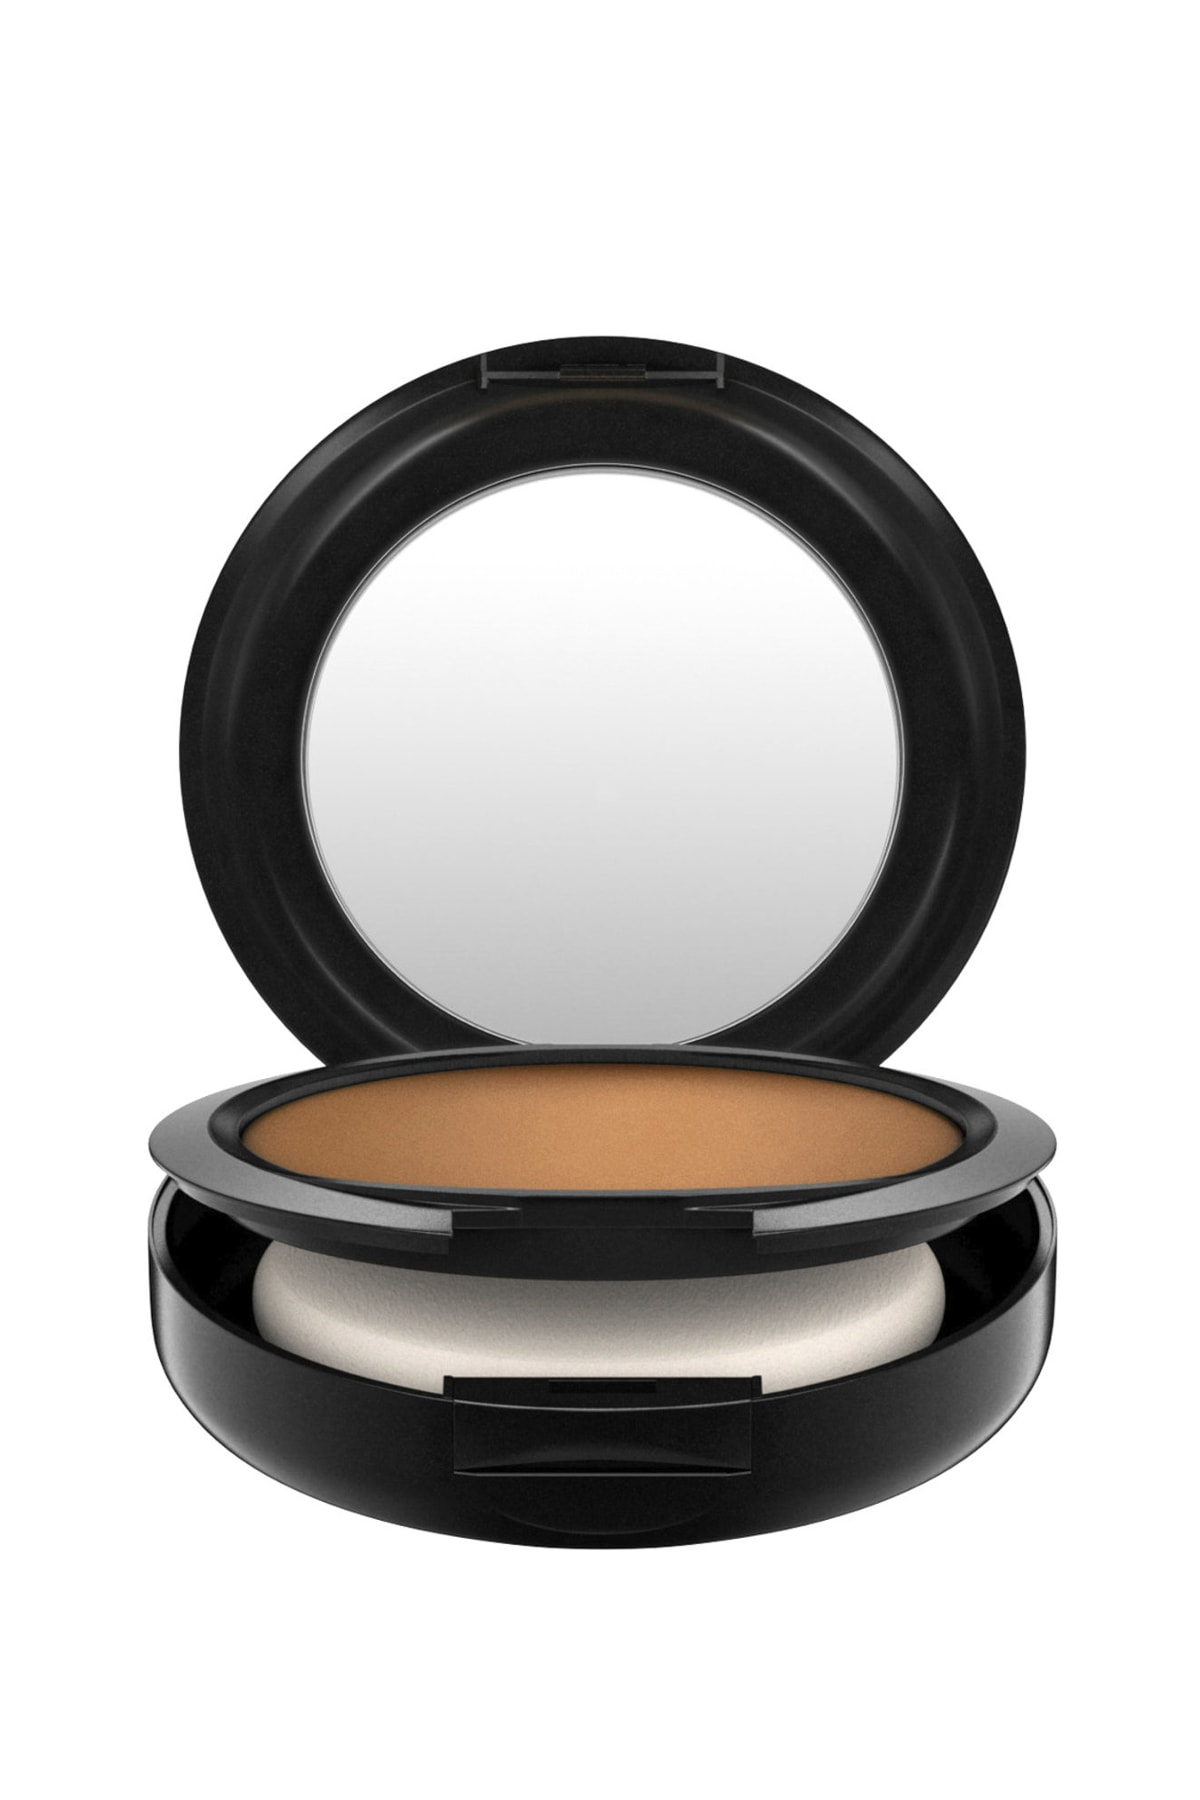 M.A.C Fondöten - Studio Fix Powder Plus Foundation NW5 773602010769 1